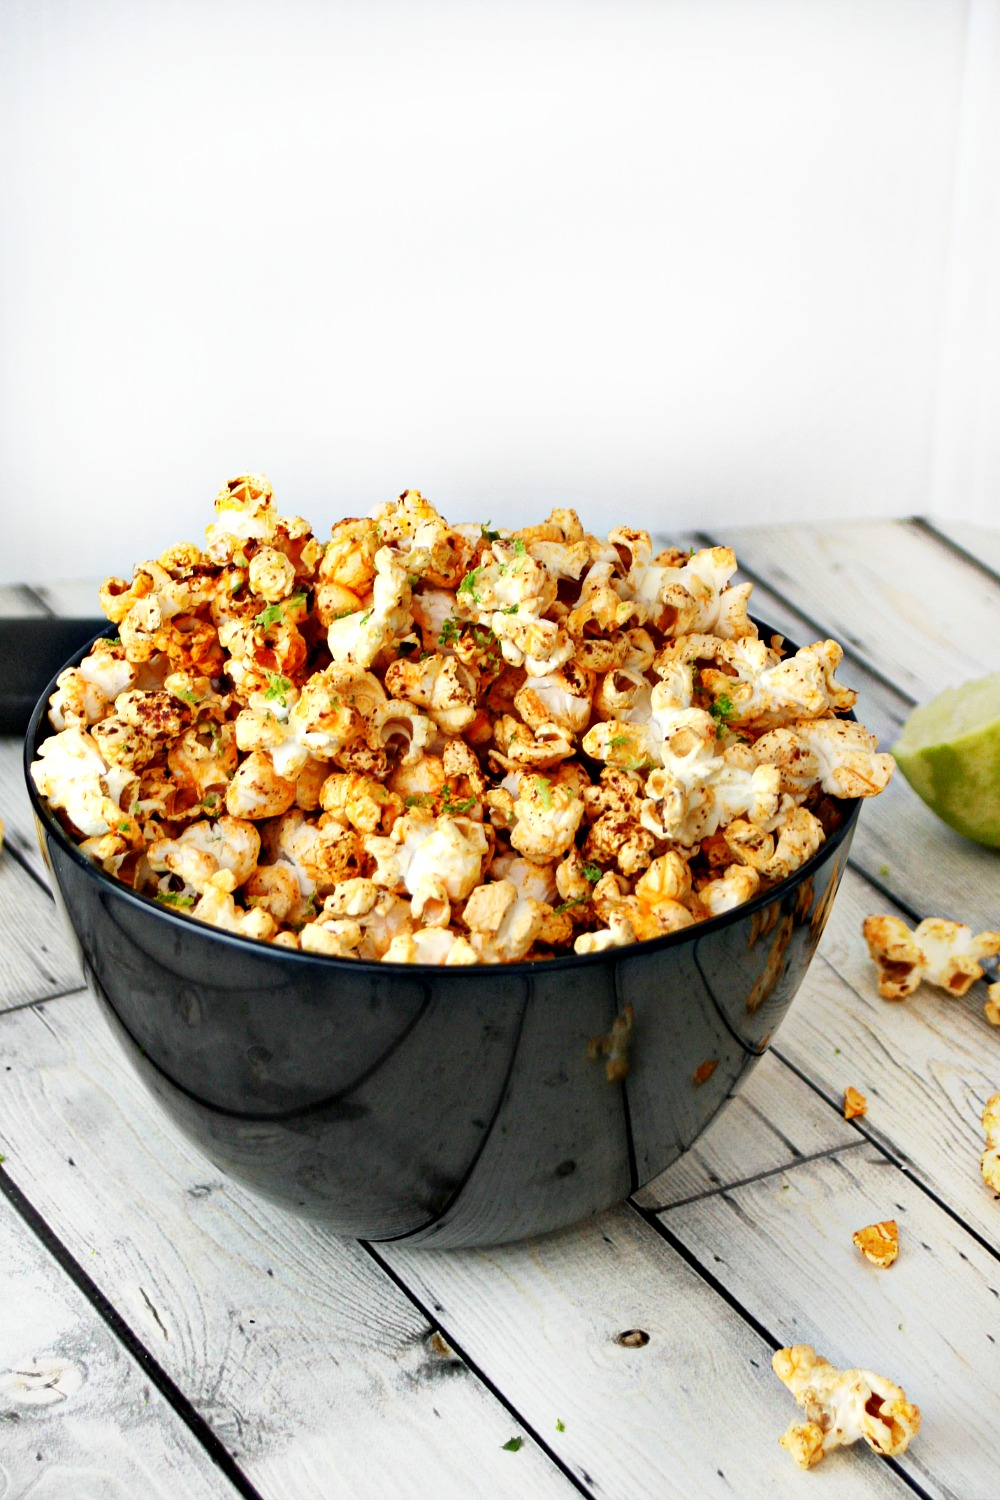 Chili and Lime Popcorn 4